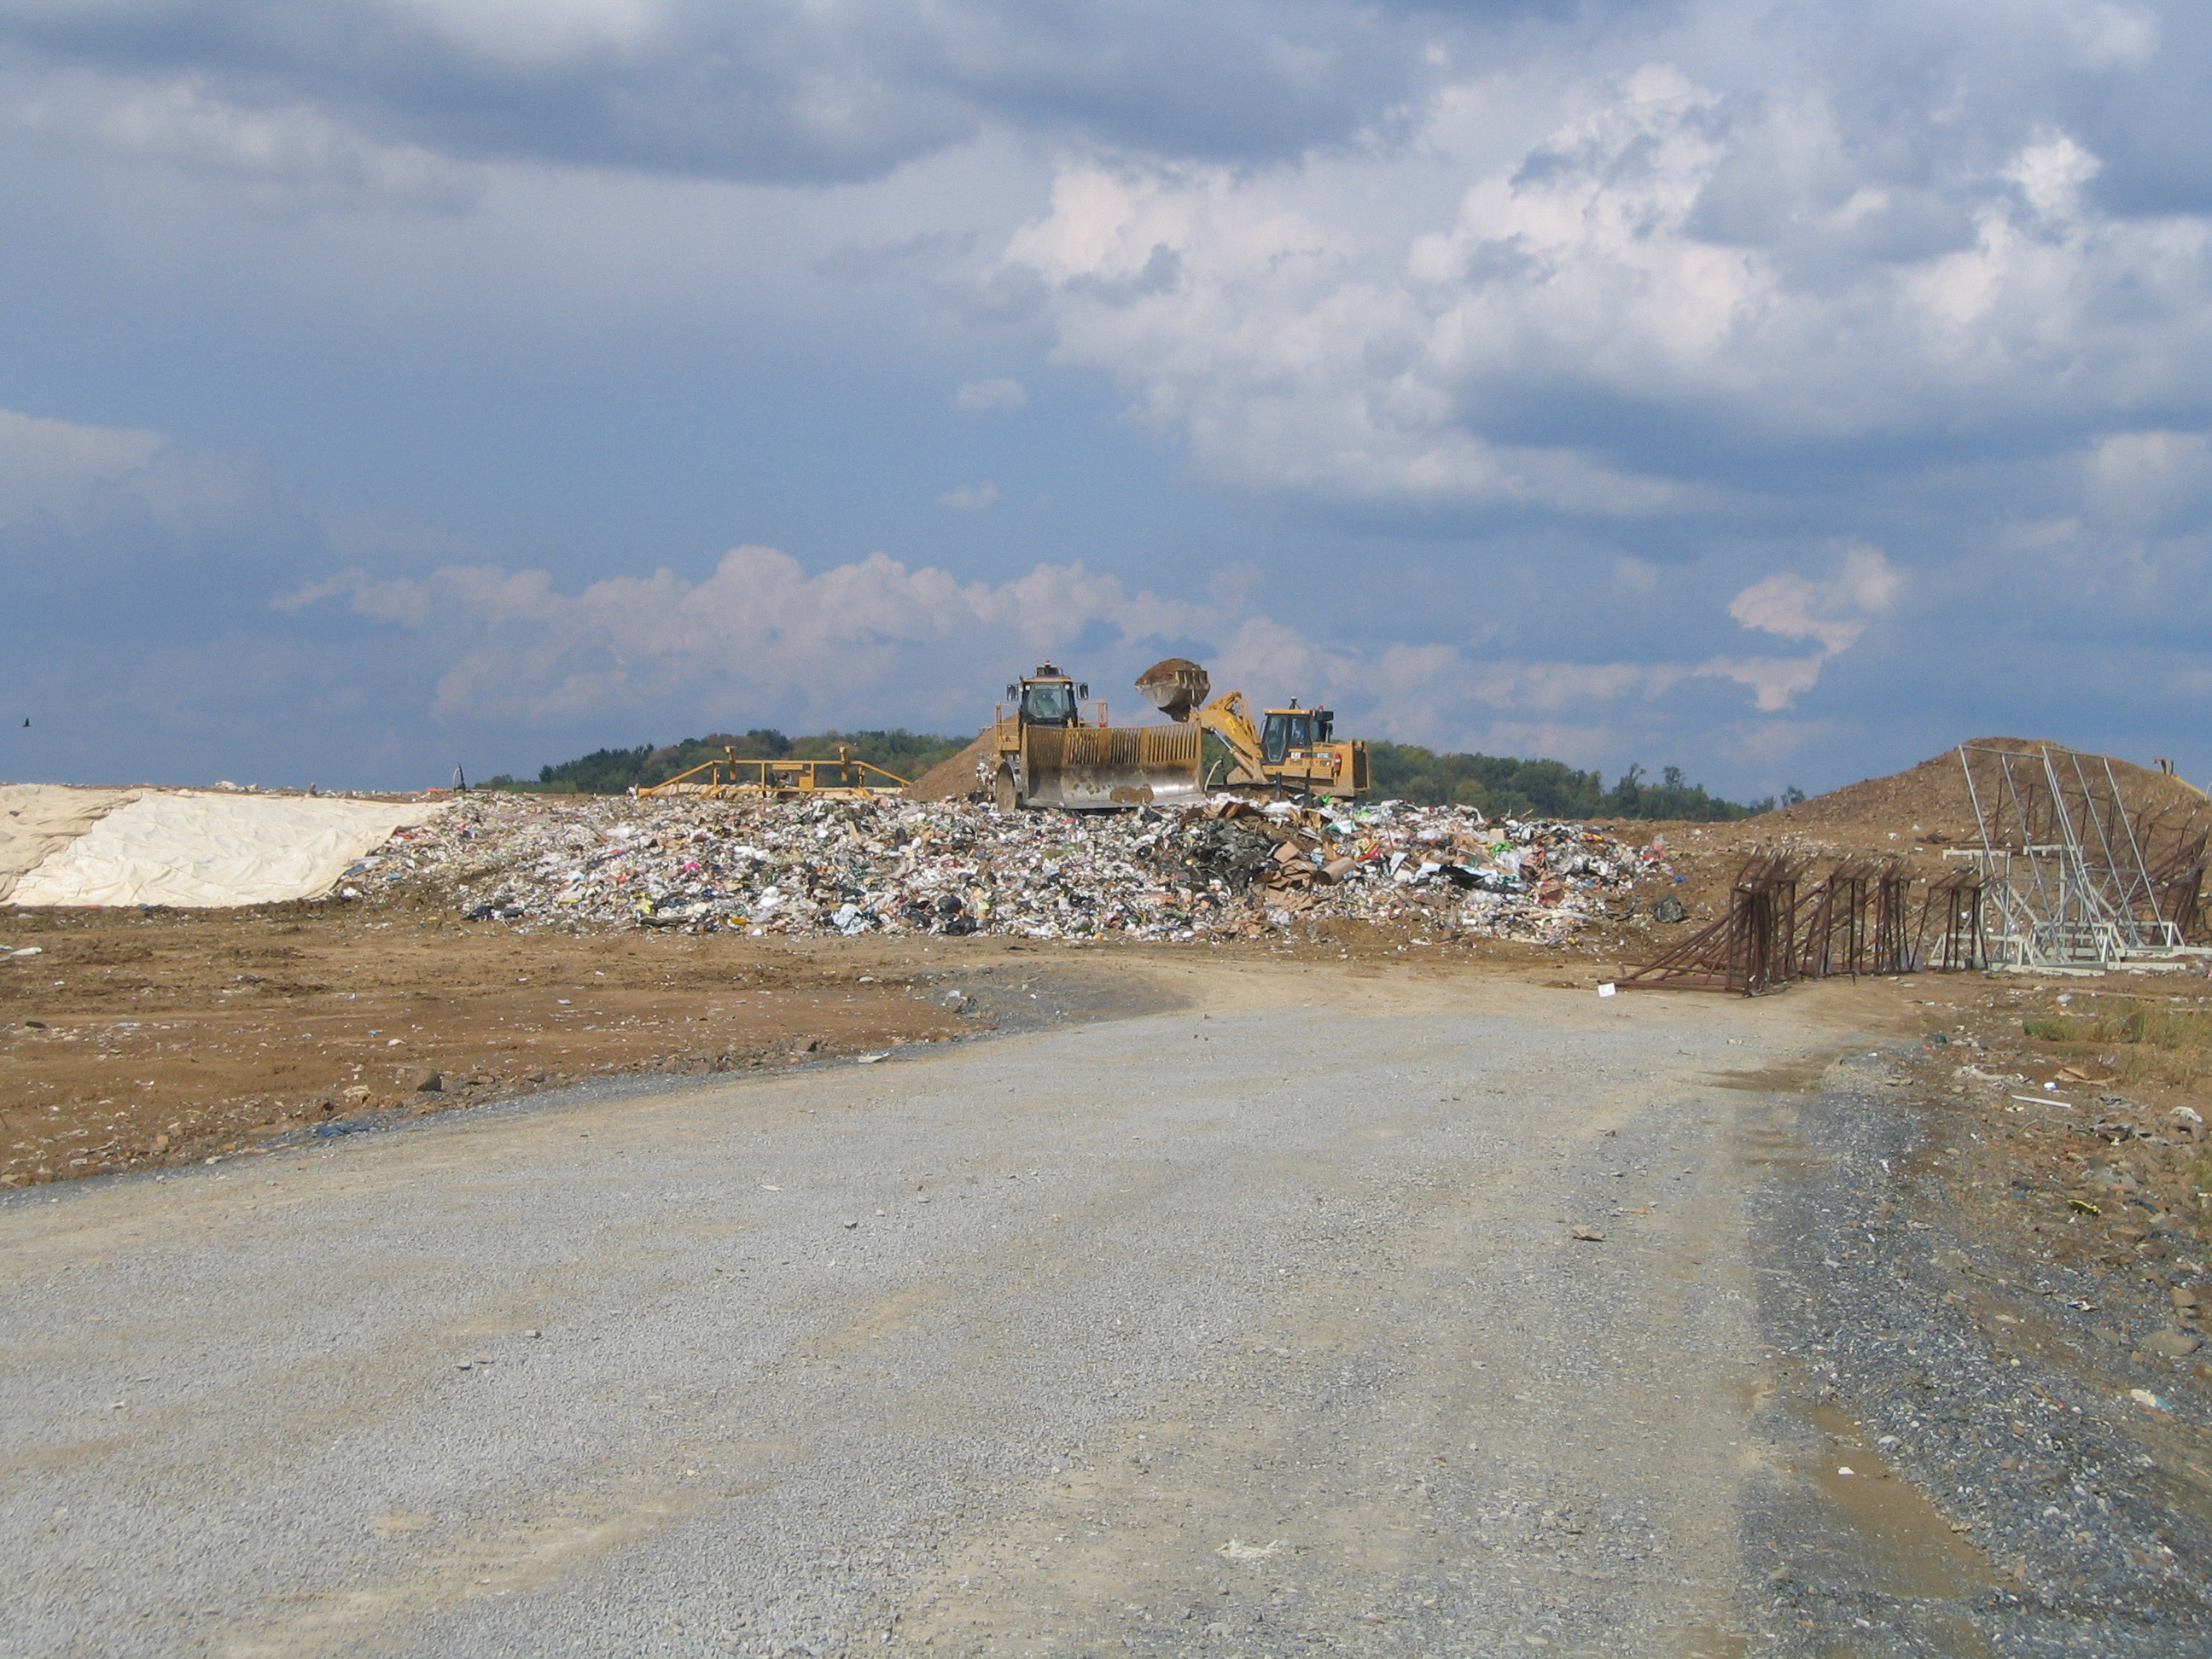 A bulldozer moving trash in the landfill